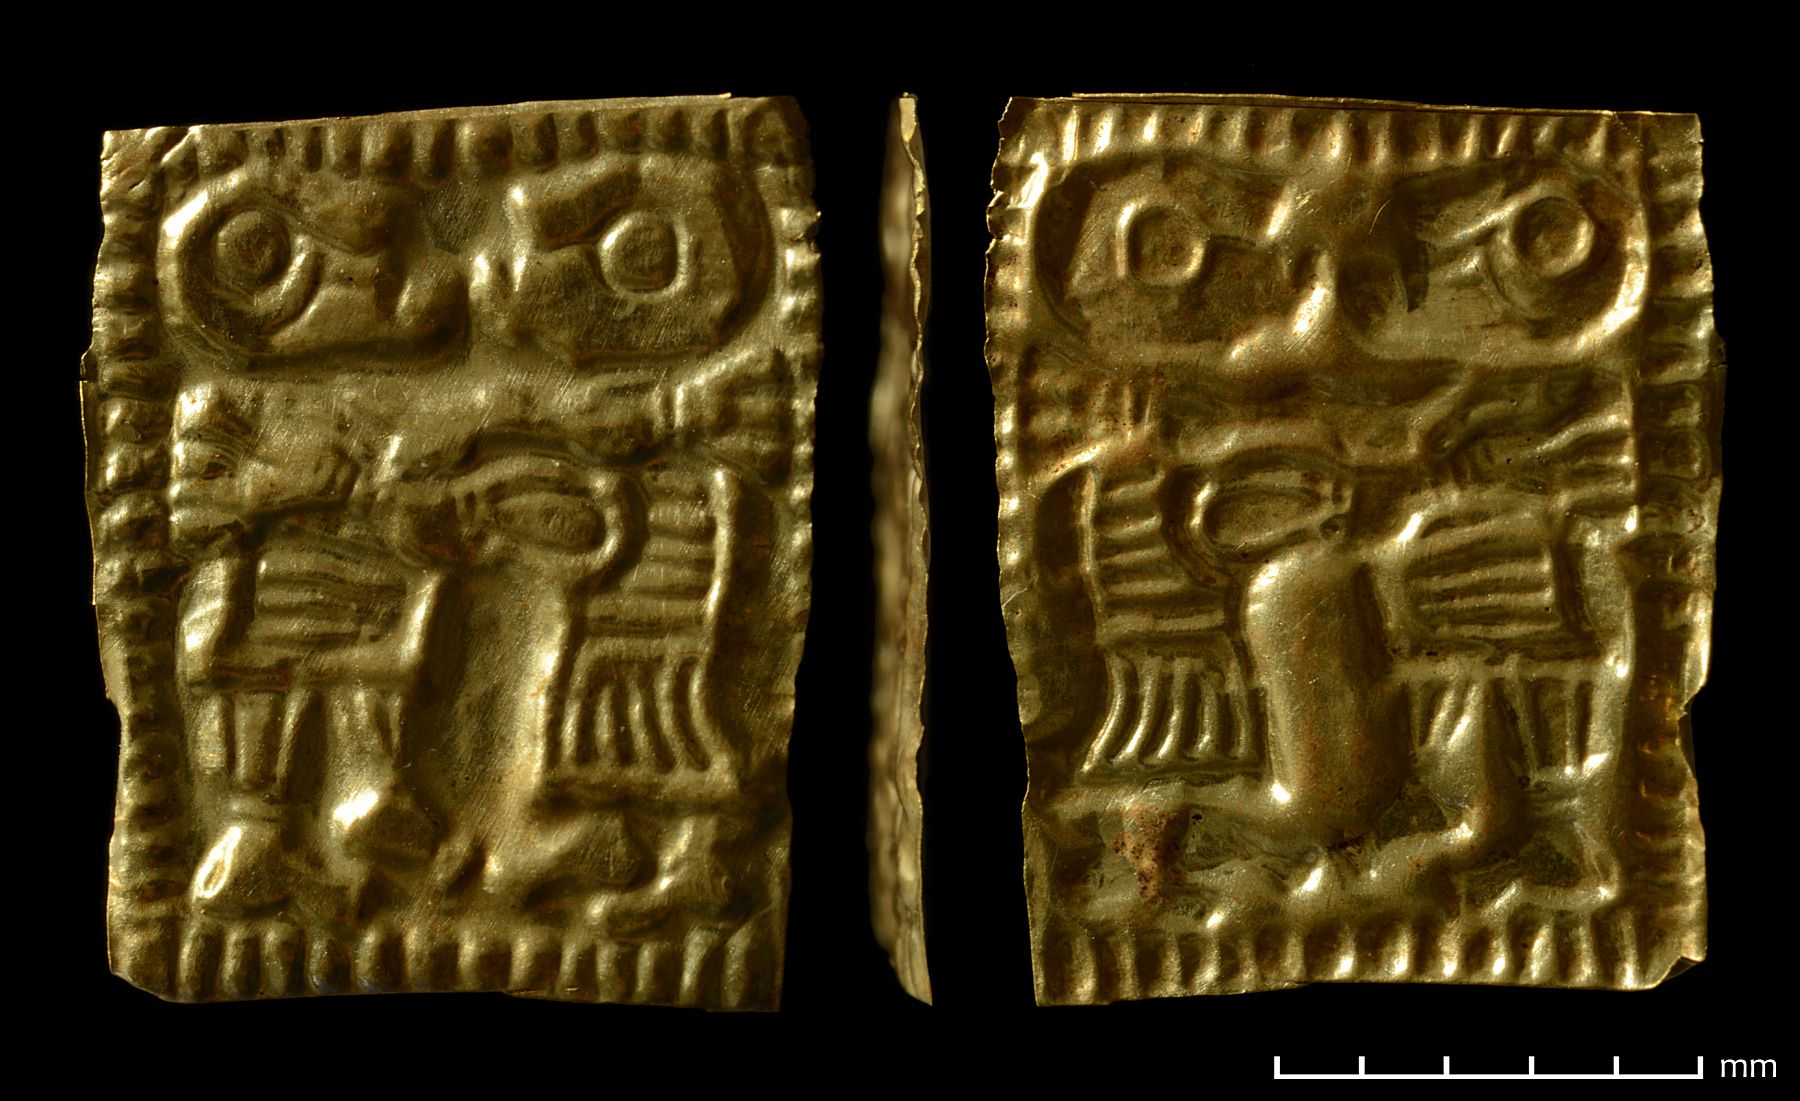 Image of Viking artifact